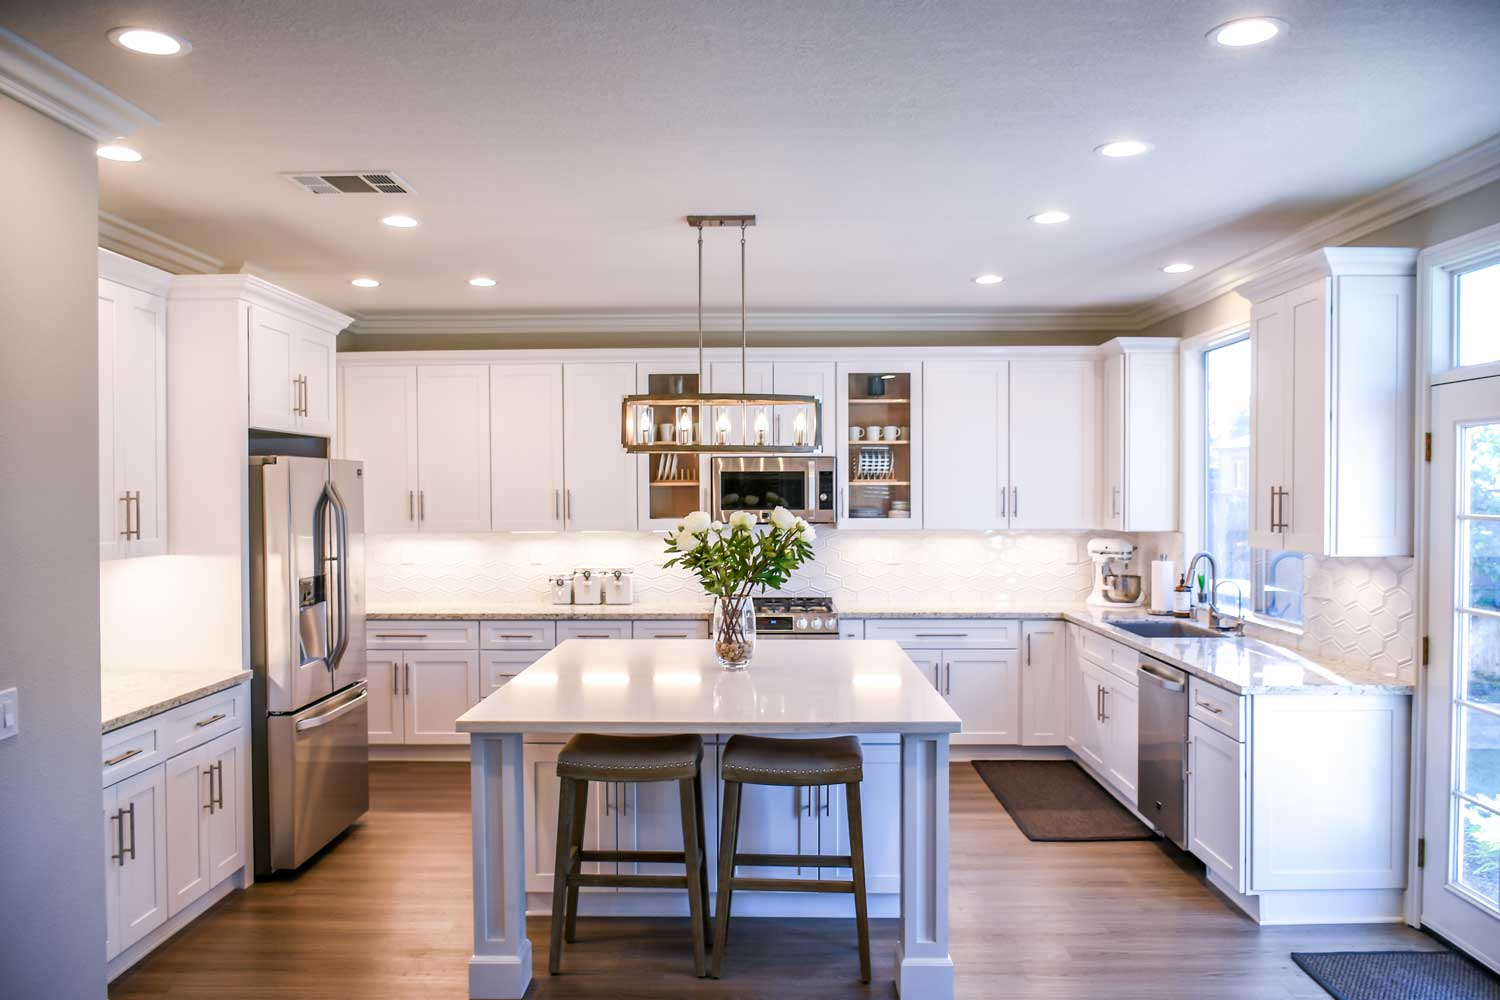 Kitchen Remodeled using Credit Union Mortgage Loan